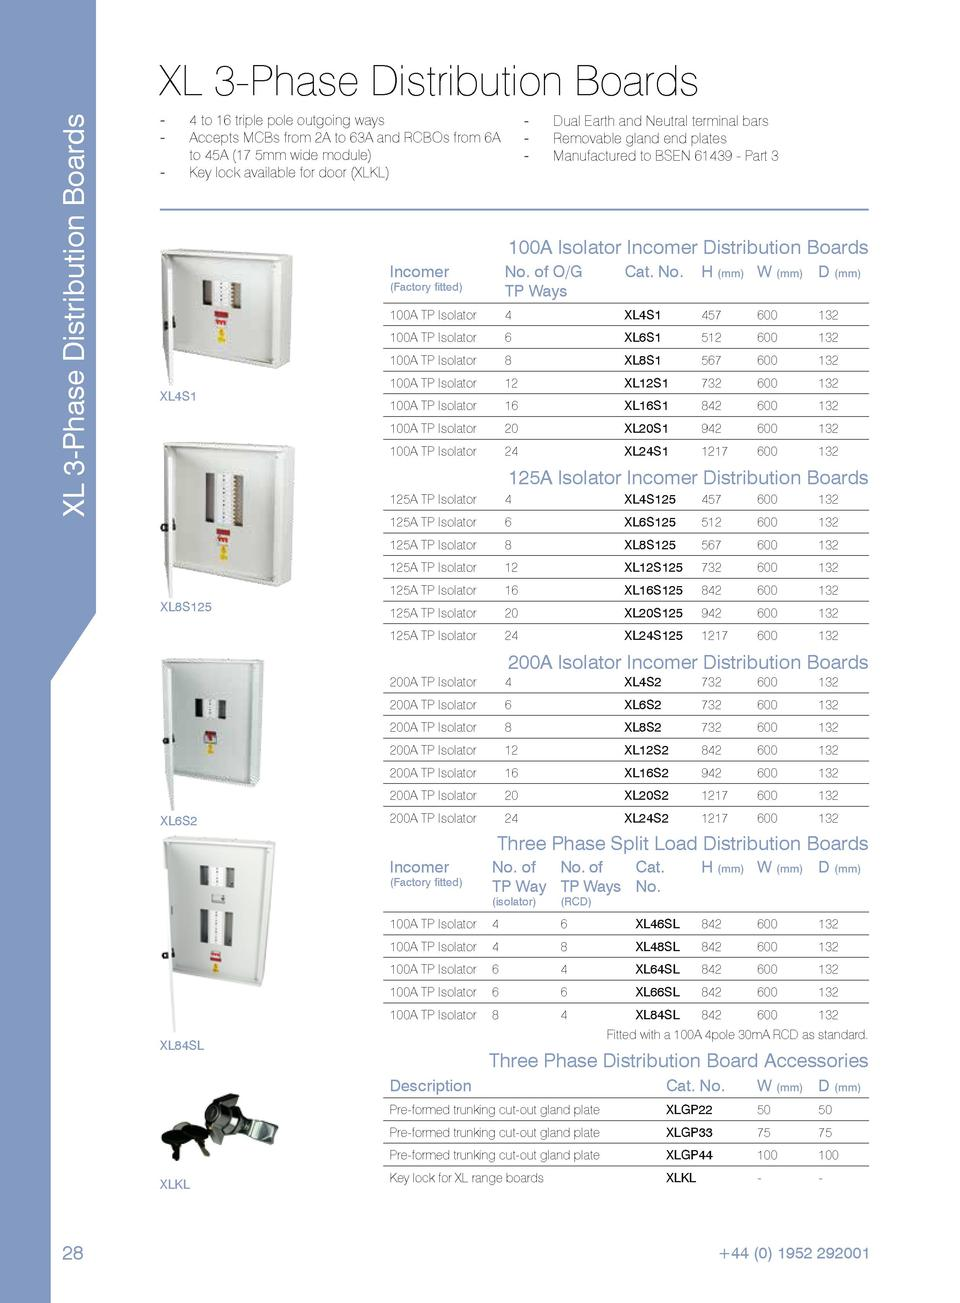 XL 3-Phase Distribution Boards  XL 3-Phase Distribution Boards ----  ----  4 to 16 triple pole outgoing ways. Accepts MCBs...